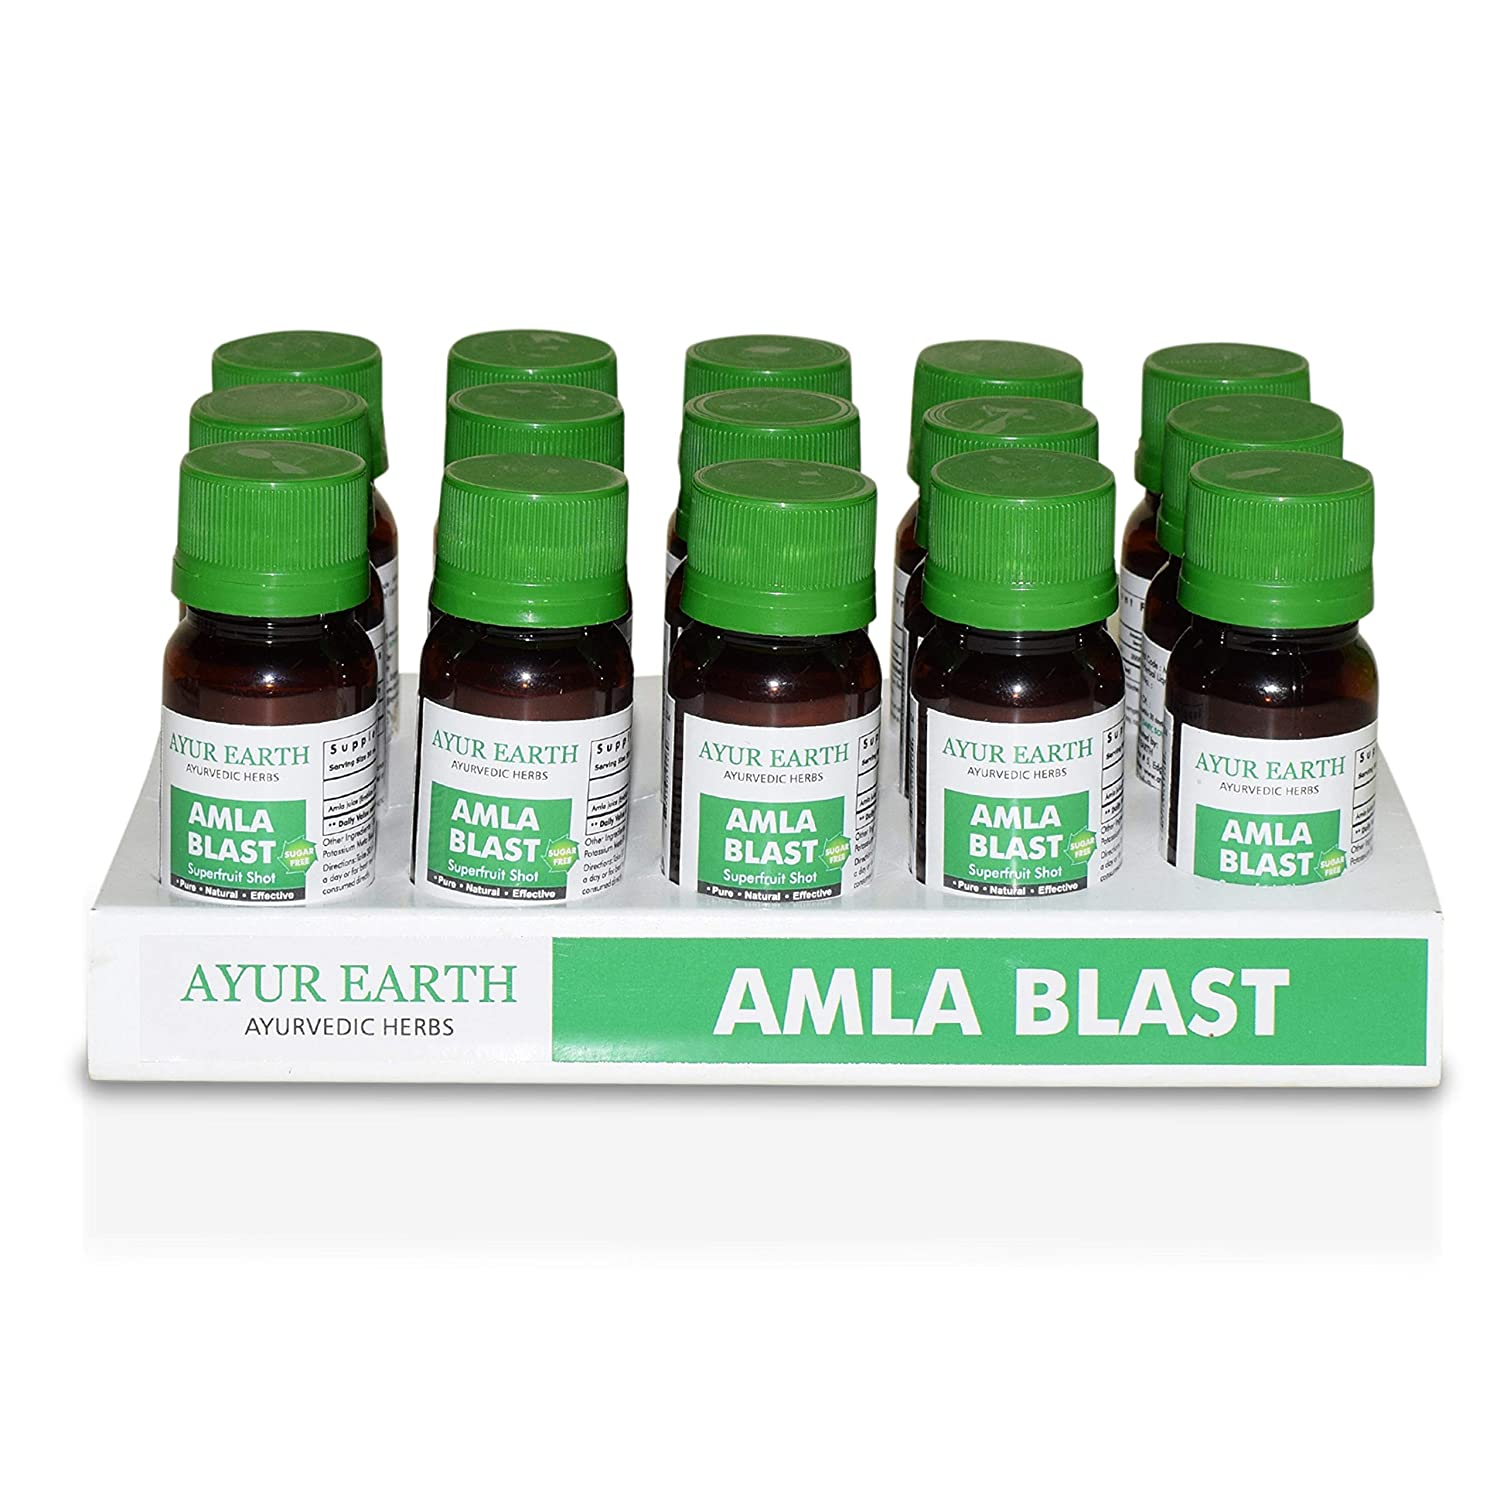 Amla Amalaki Superfood Supreme Shots 30000 Mg Highest Potency Available – Ayurveda Natural Formula – Liquids Work Faster Than Pills – Hair, Skin, Nail Health -Boost Immune System – Powder Replacement